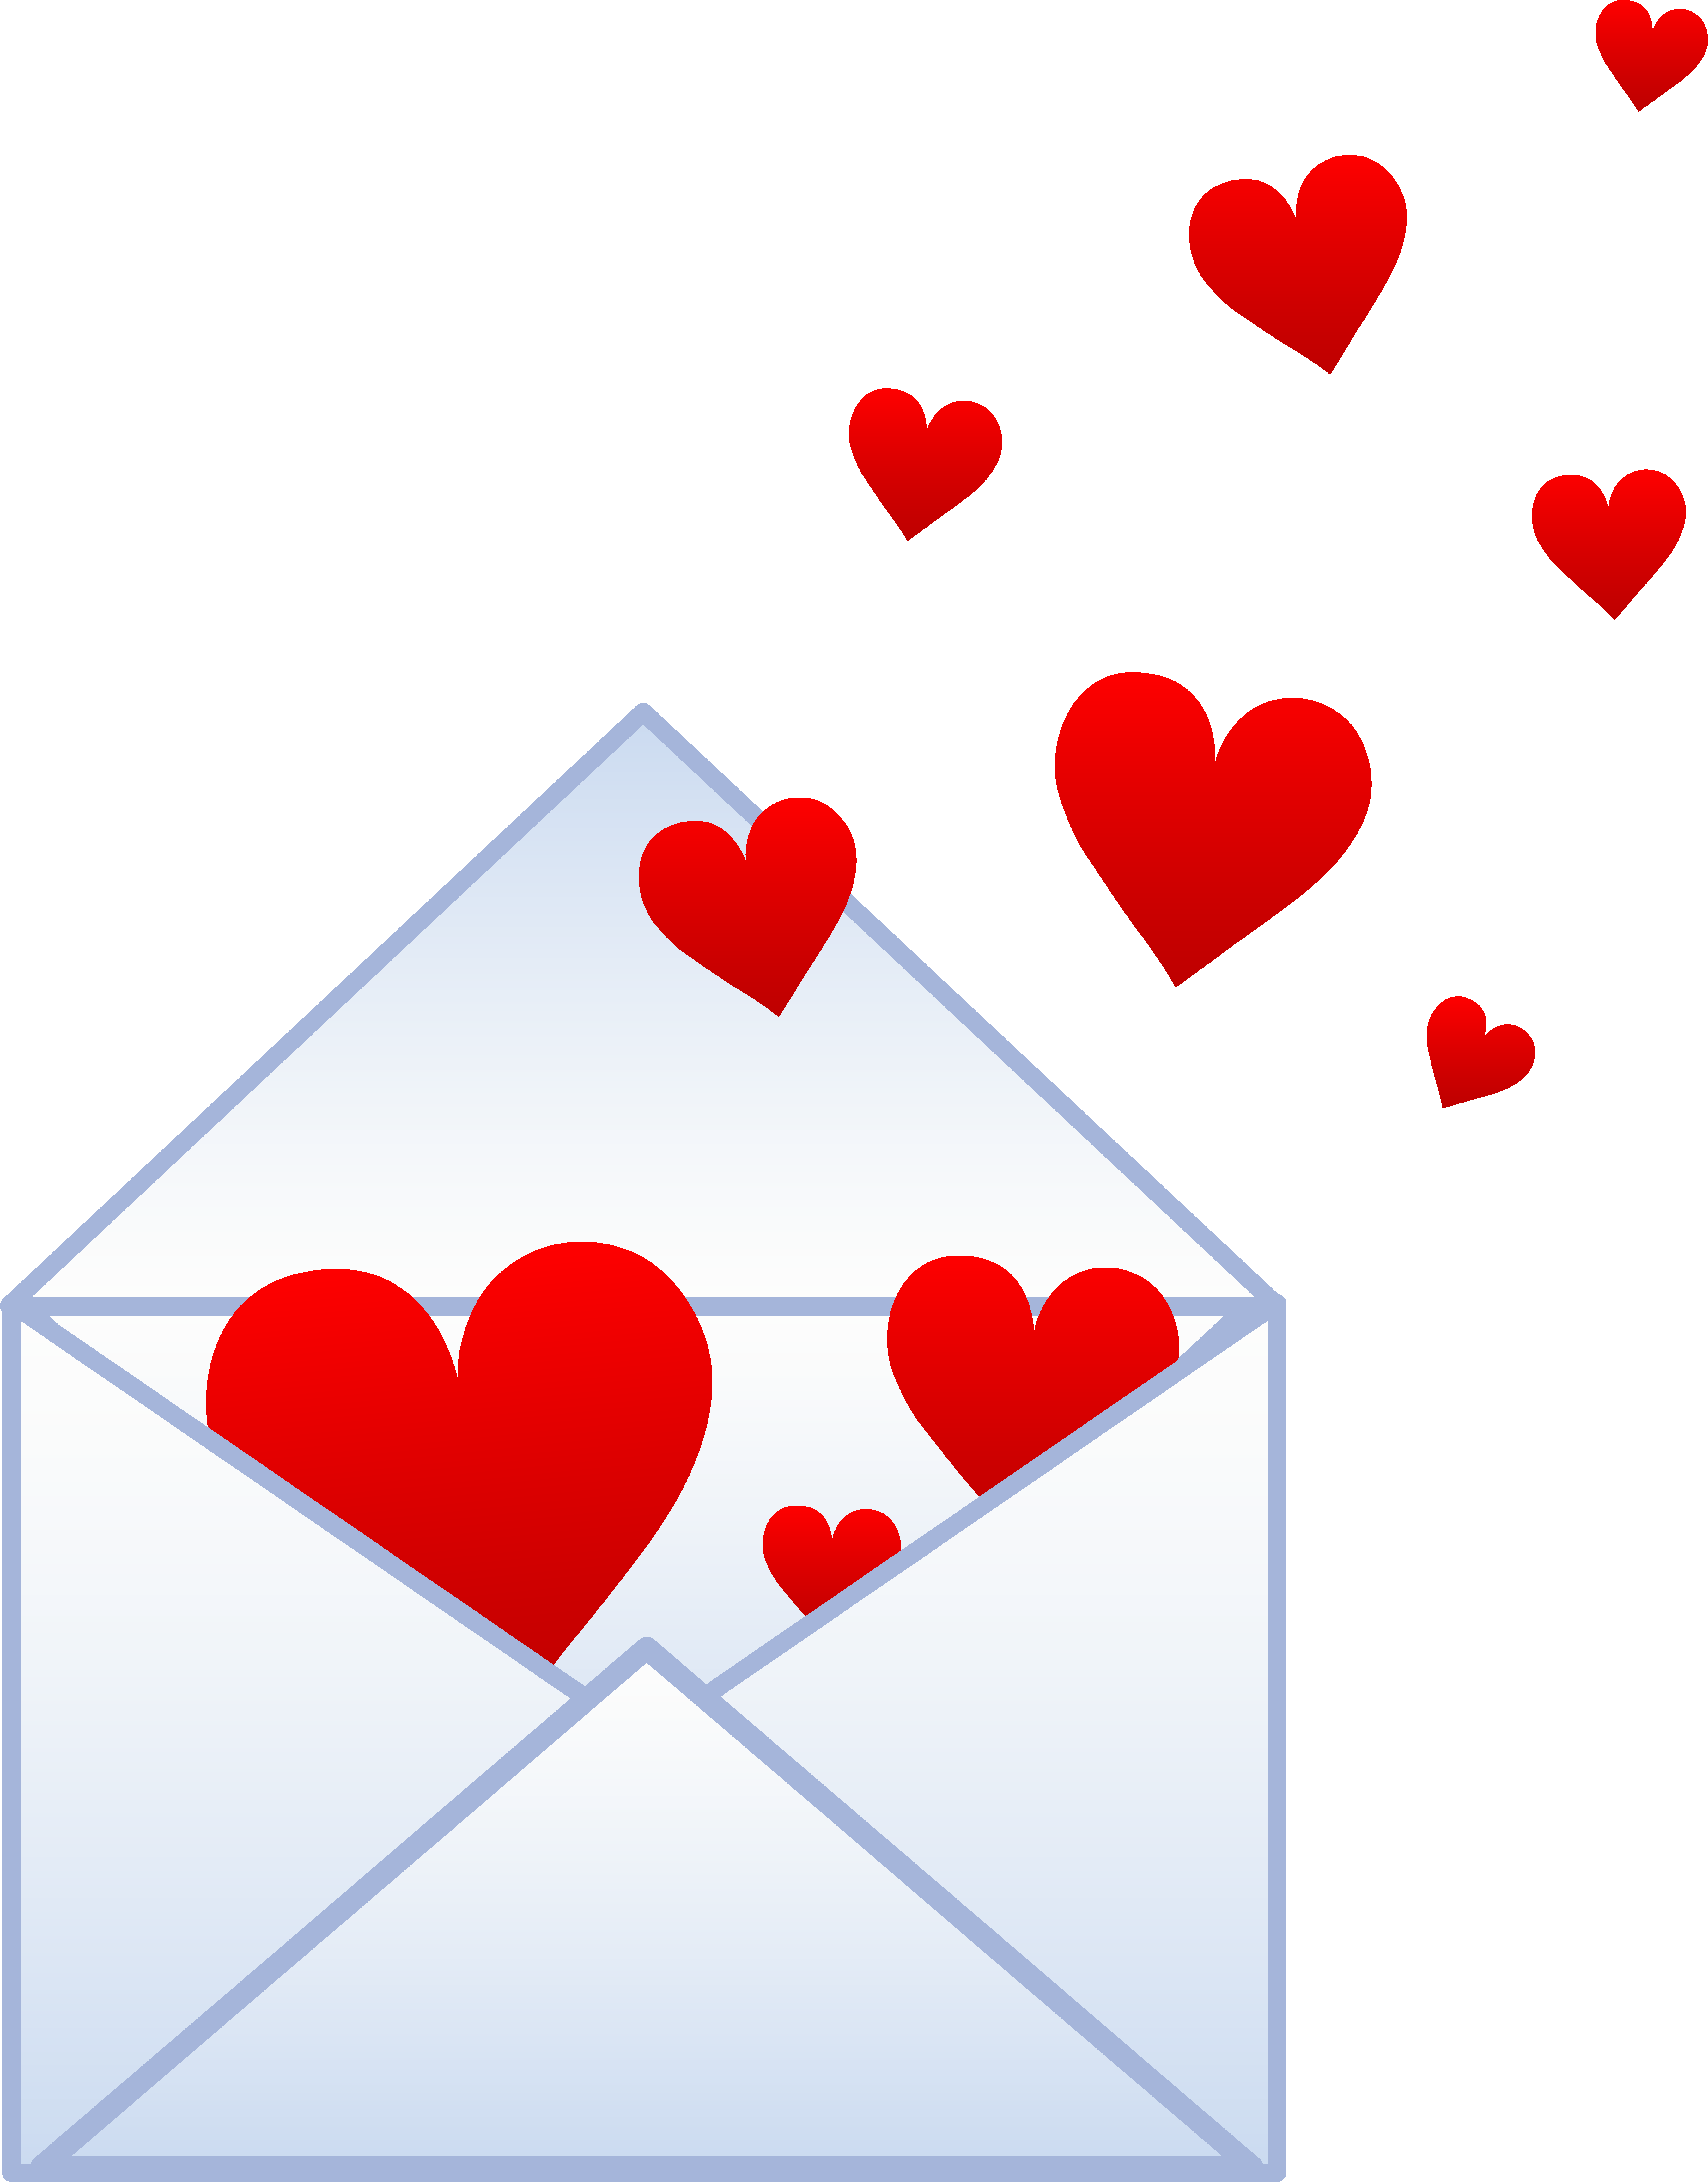 Hearts free clip art freeuse download Free Pictures Hearts | Letter With Hearts Flying Out - Free Clip Art ... freeuse download